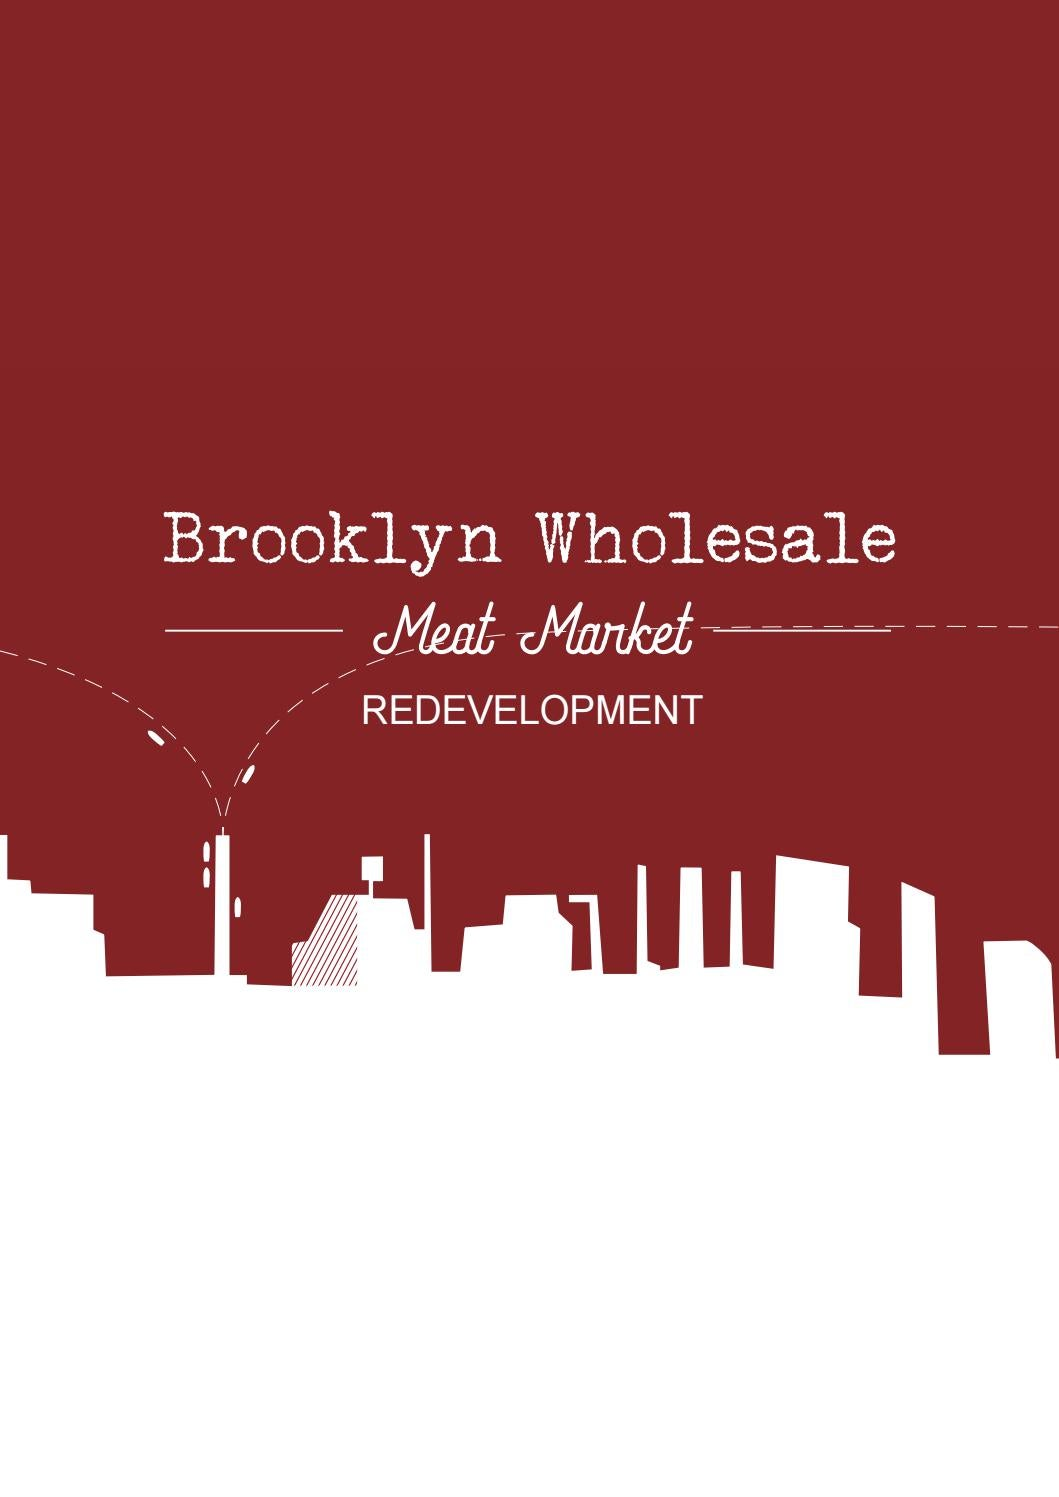 Brooklyn Wholesale Meat Market Redevelopment by Maria Garces